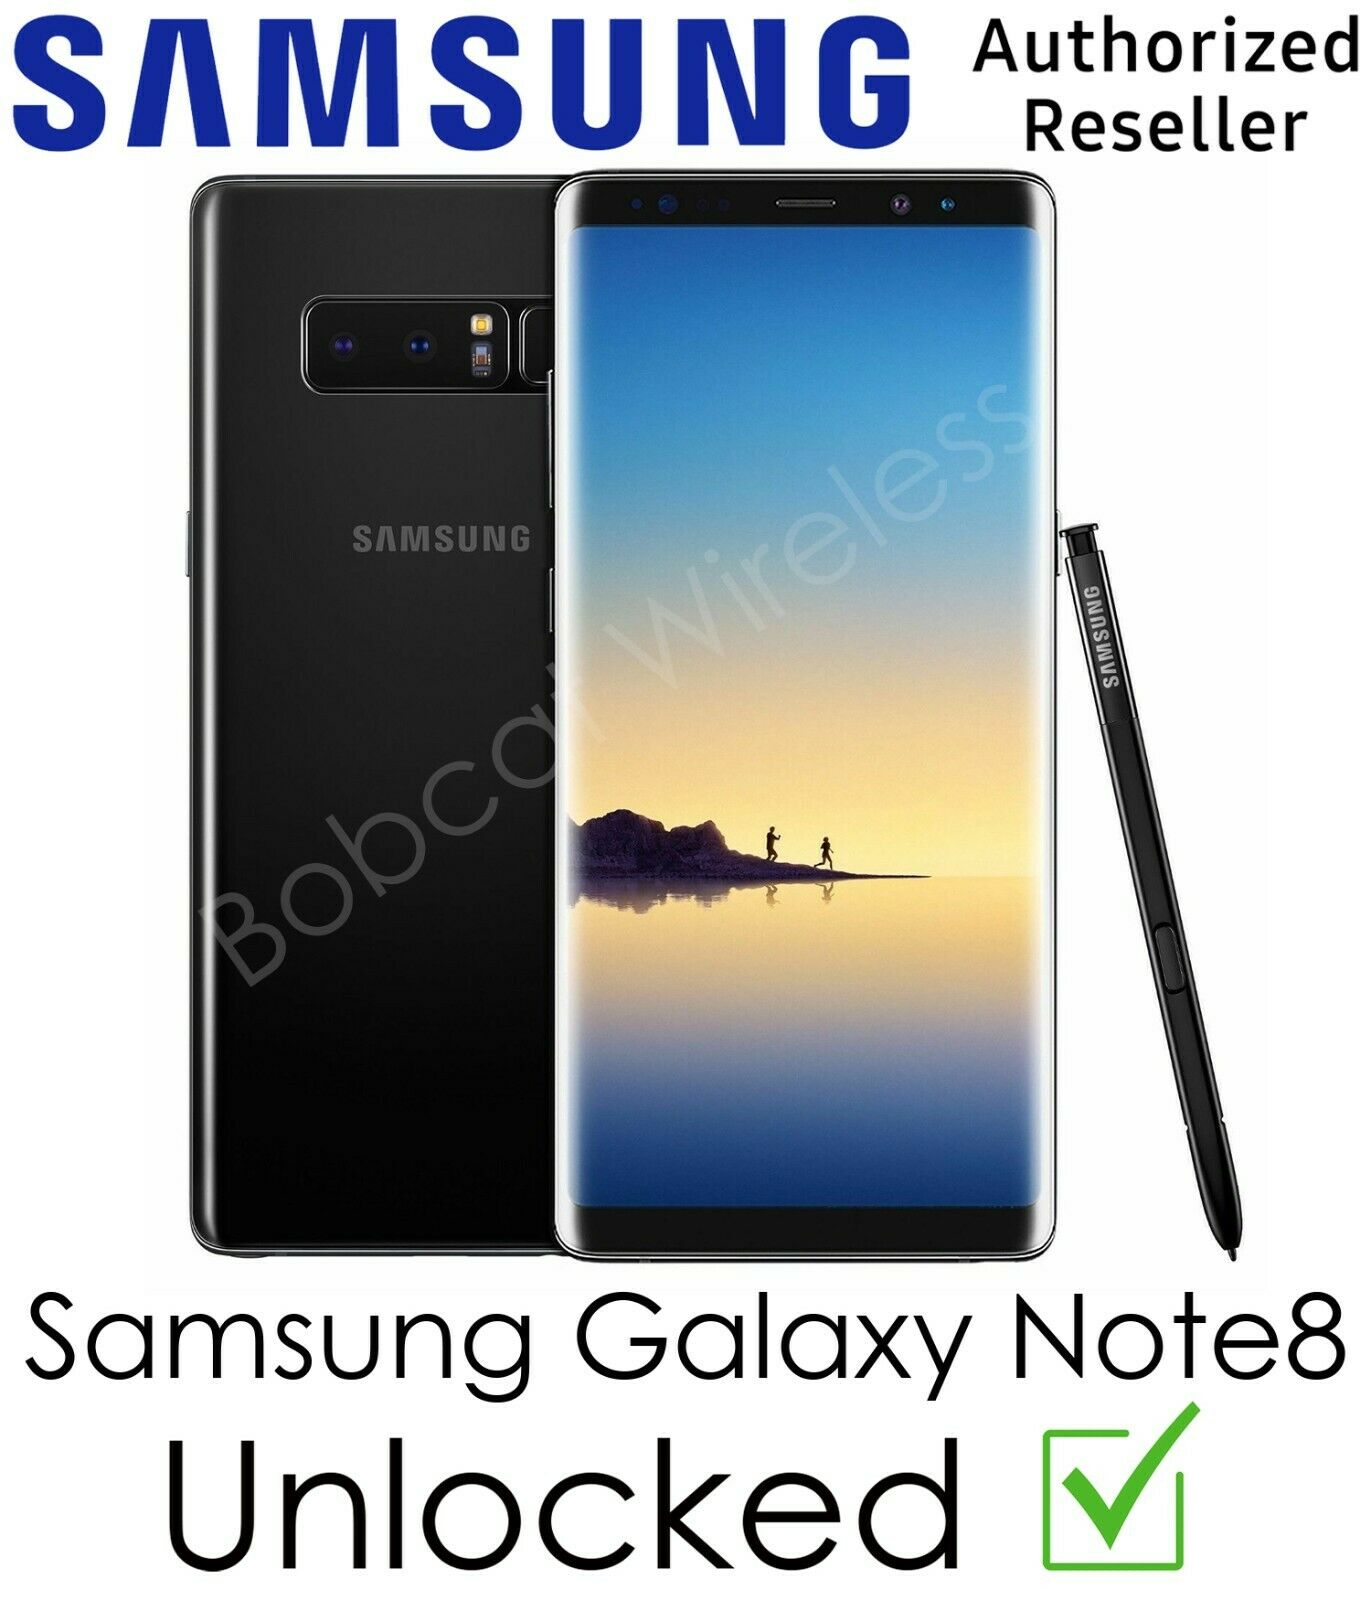 Android Phone - Samsung Galaxy Note8 N950U Black Sprint AT&T T-Mobile Verizon Carrier Unlocked